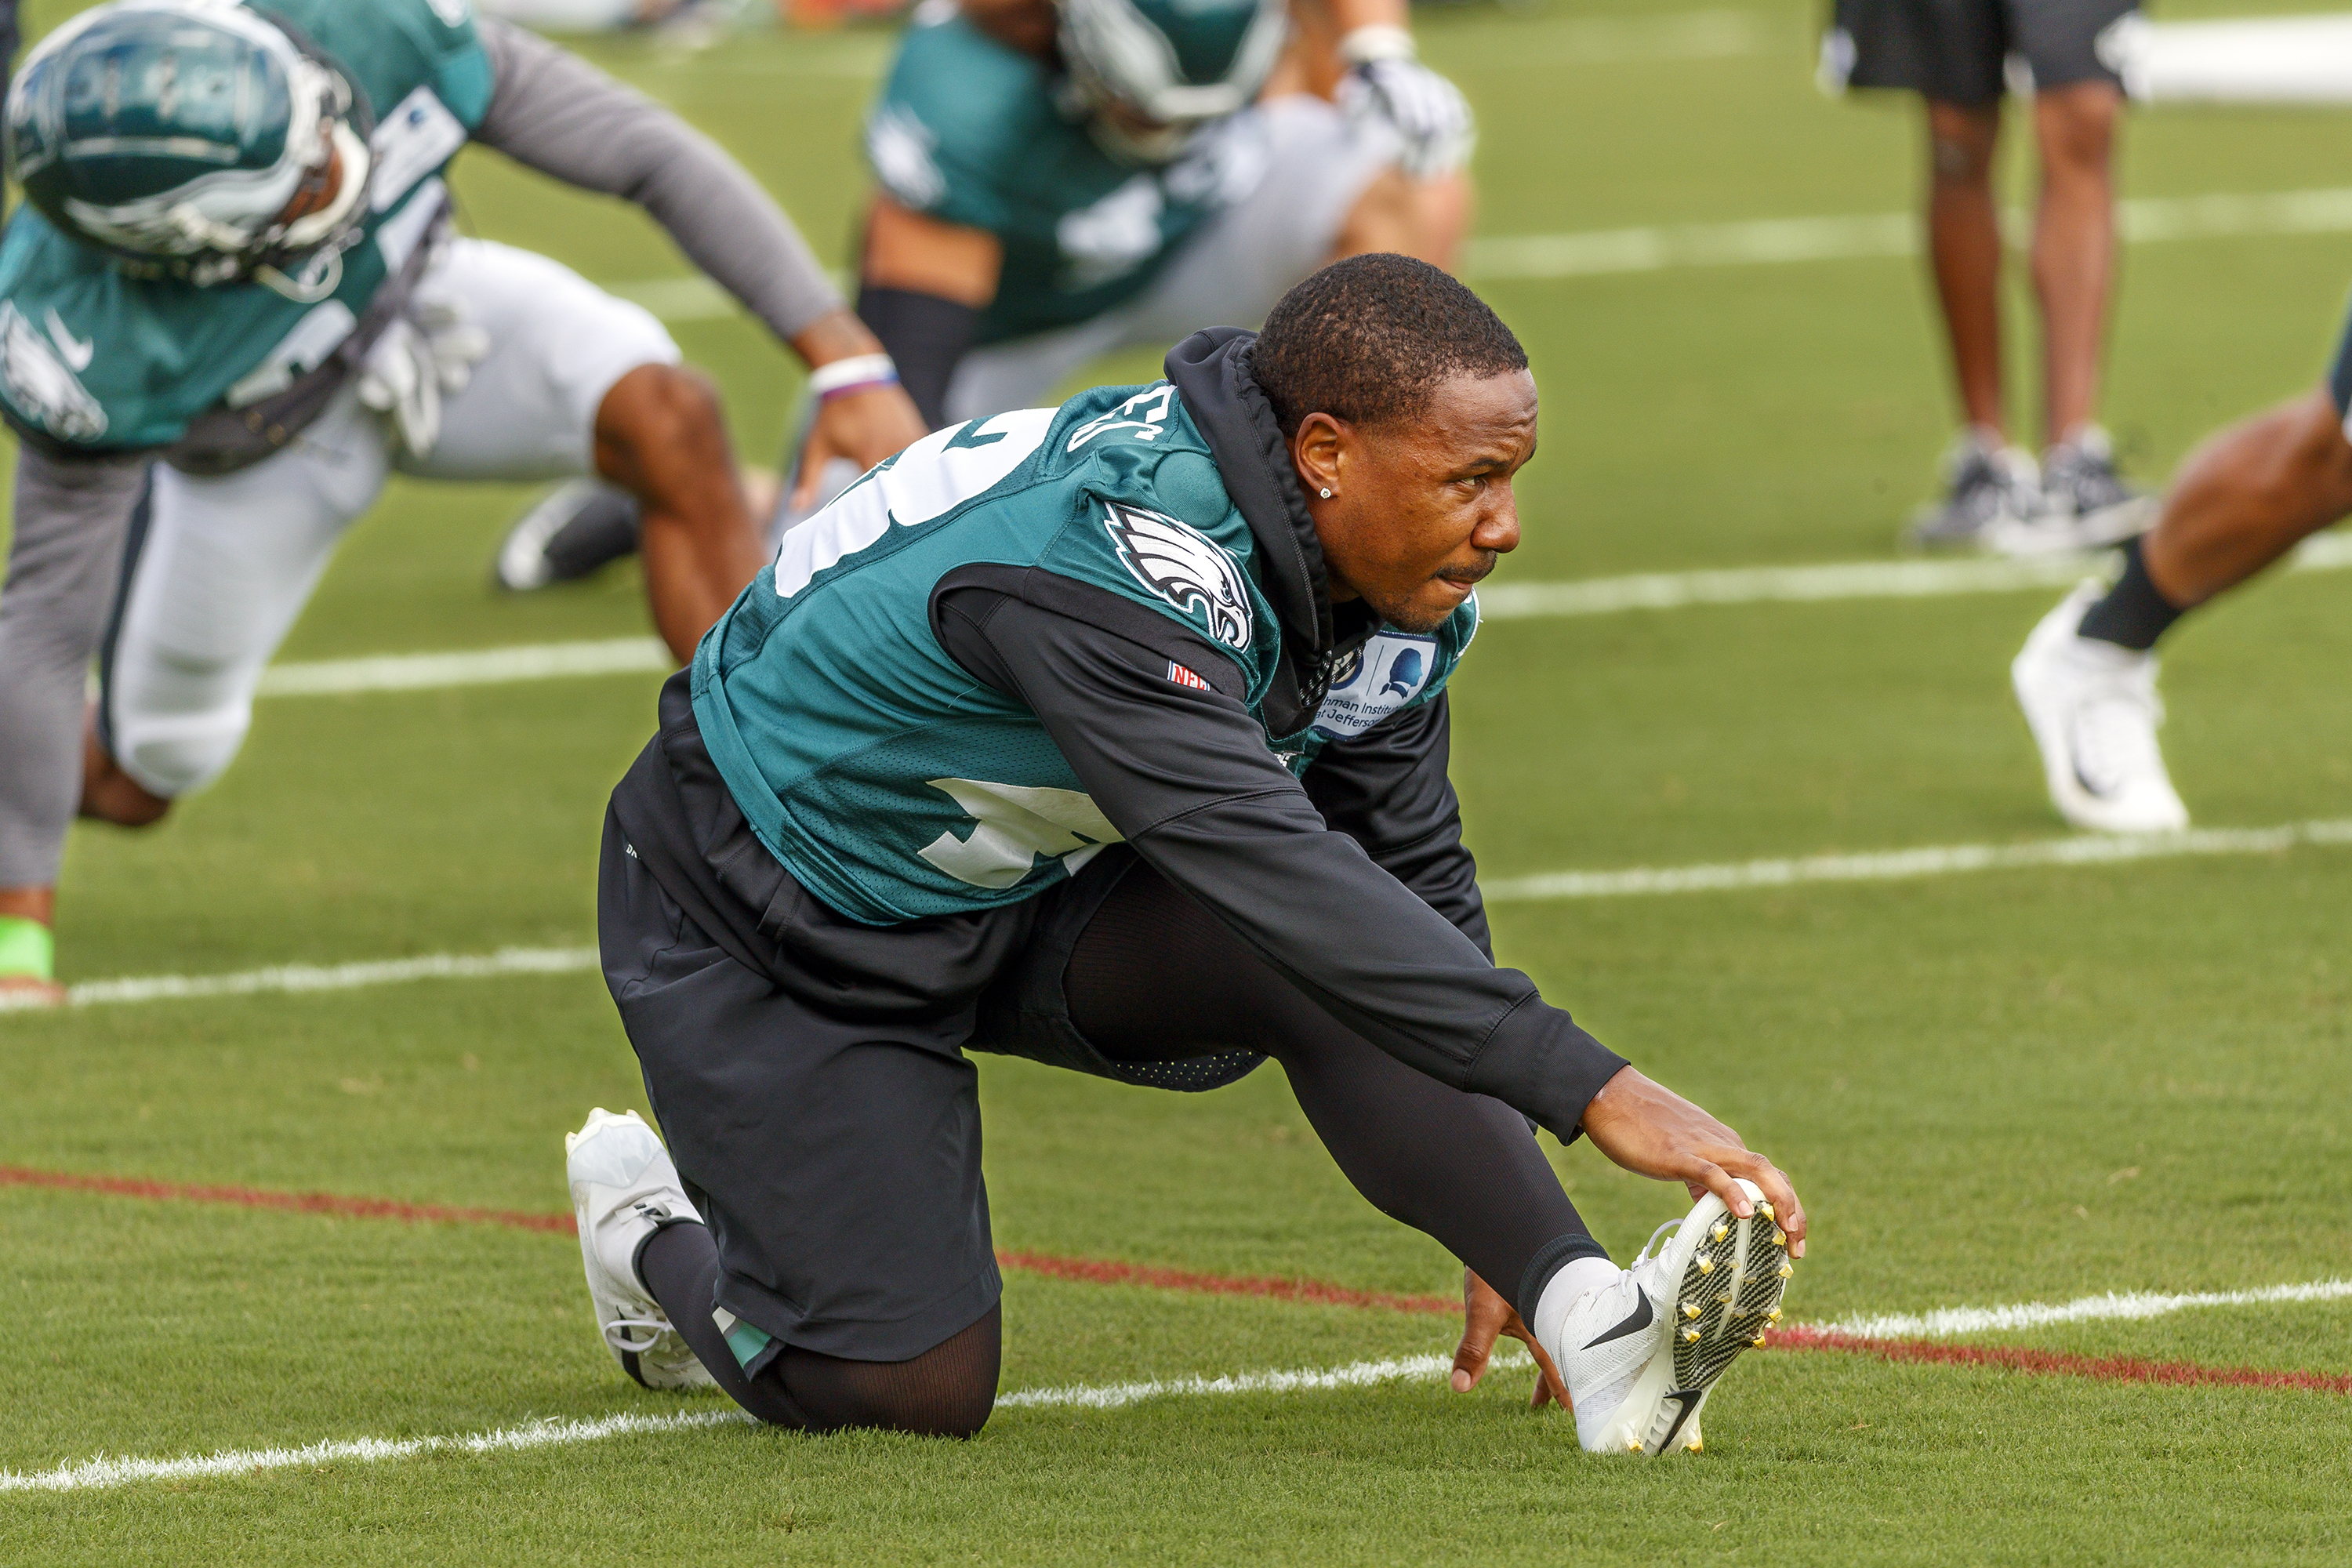 Eagle running back Darren Sproles did not dress in pads on Wednesday September 26, 2018, during the Eagles practice but he did participate in warm ups with the team.